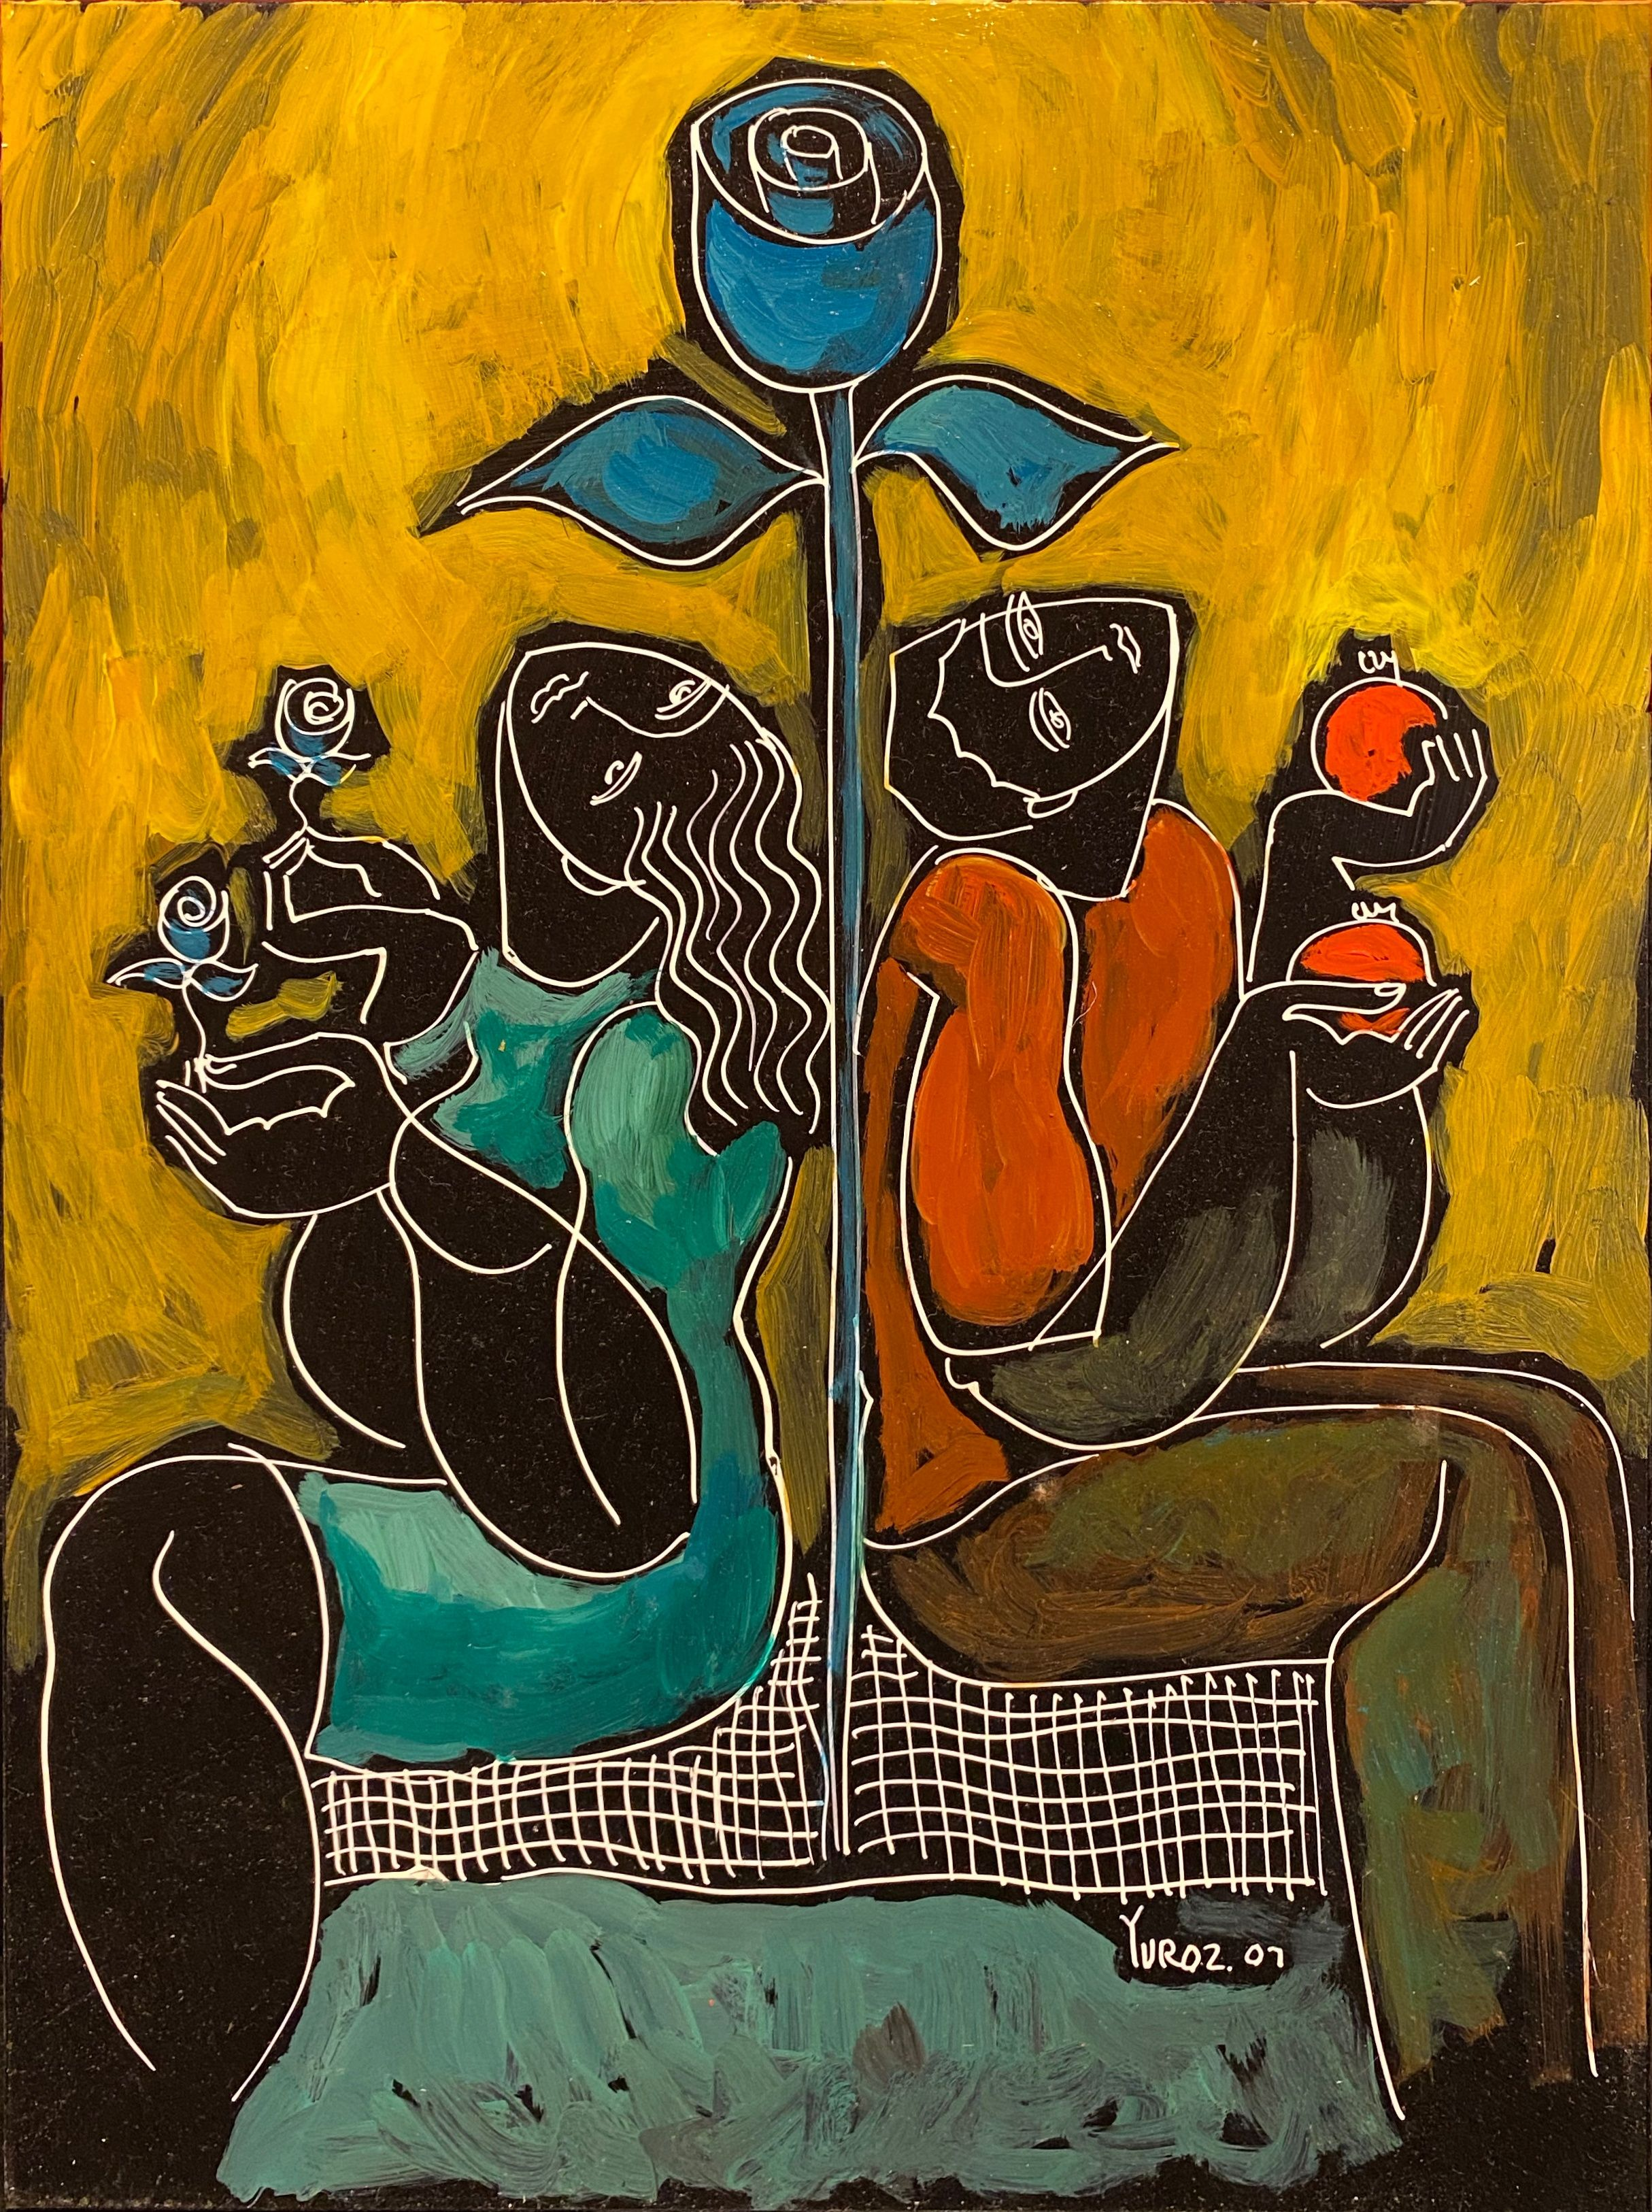 Yuroz - Serenade Under The Tree - Painting - Off The Wall Gallery Houston